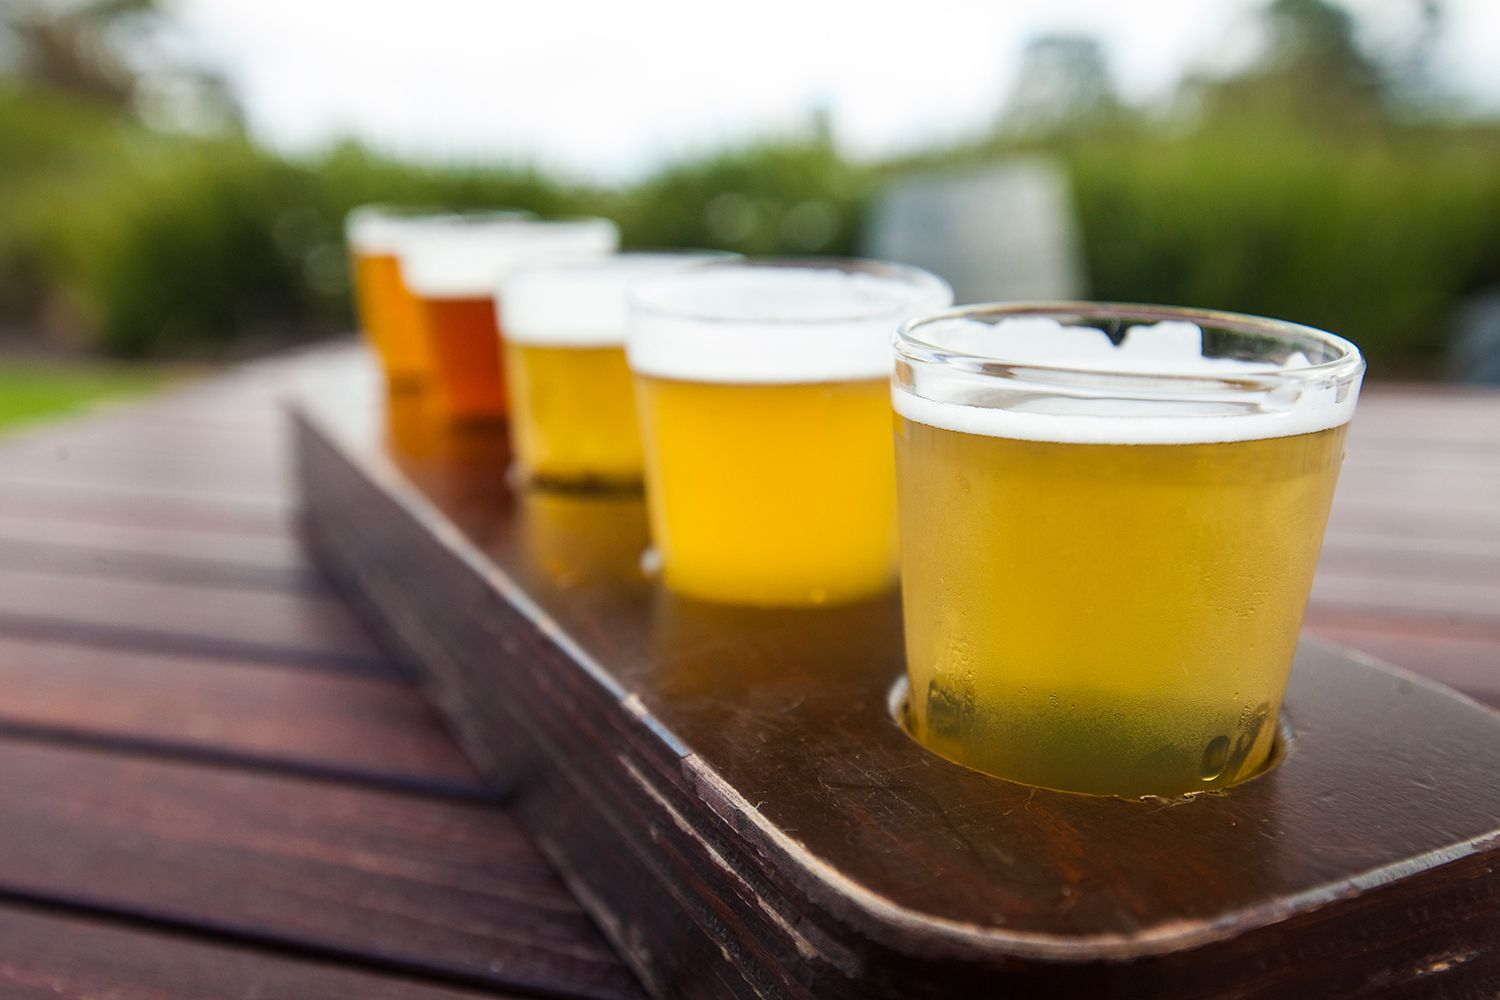 The Top 5 Beer Stocks of 2018